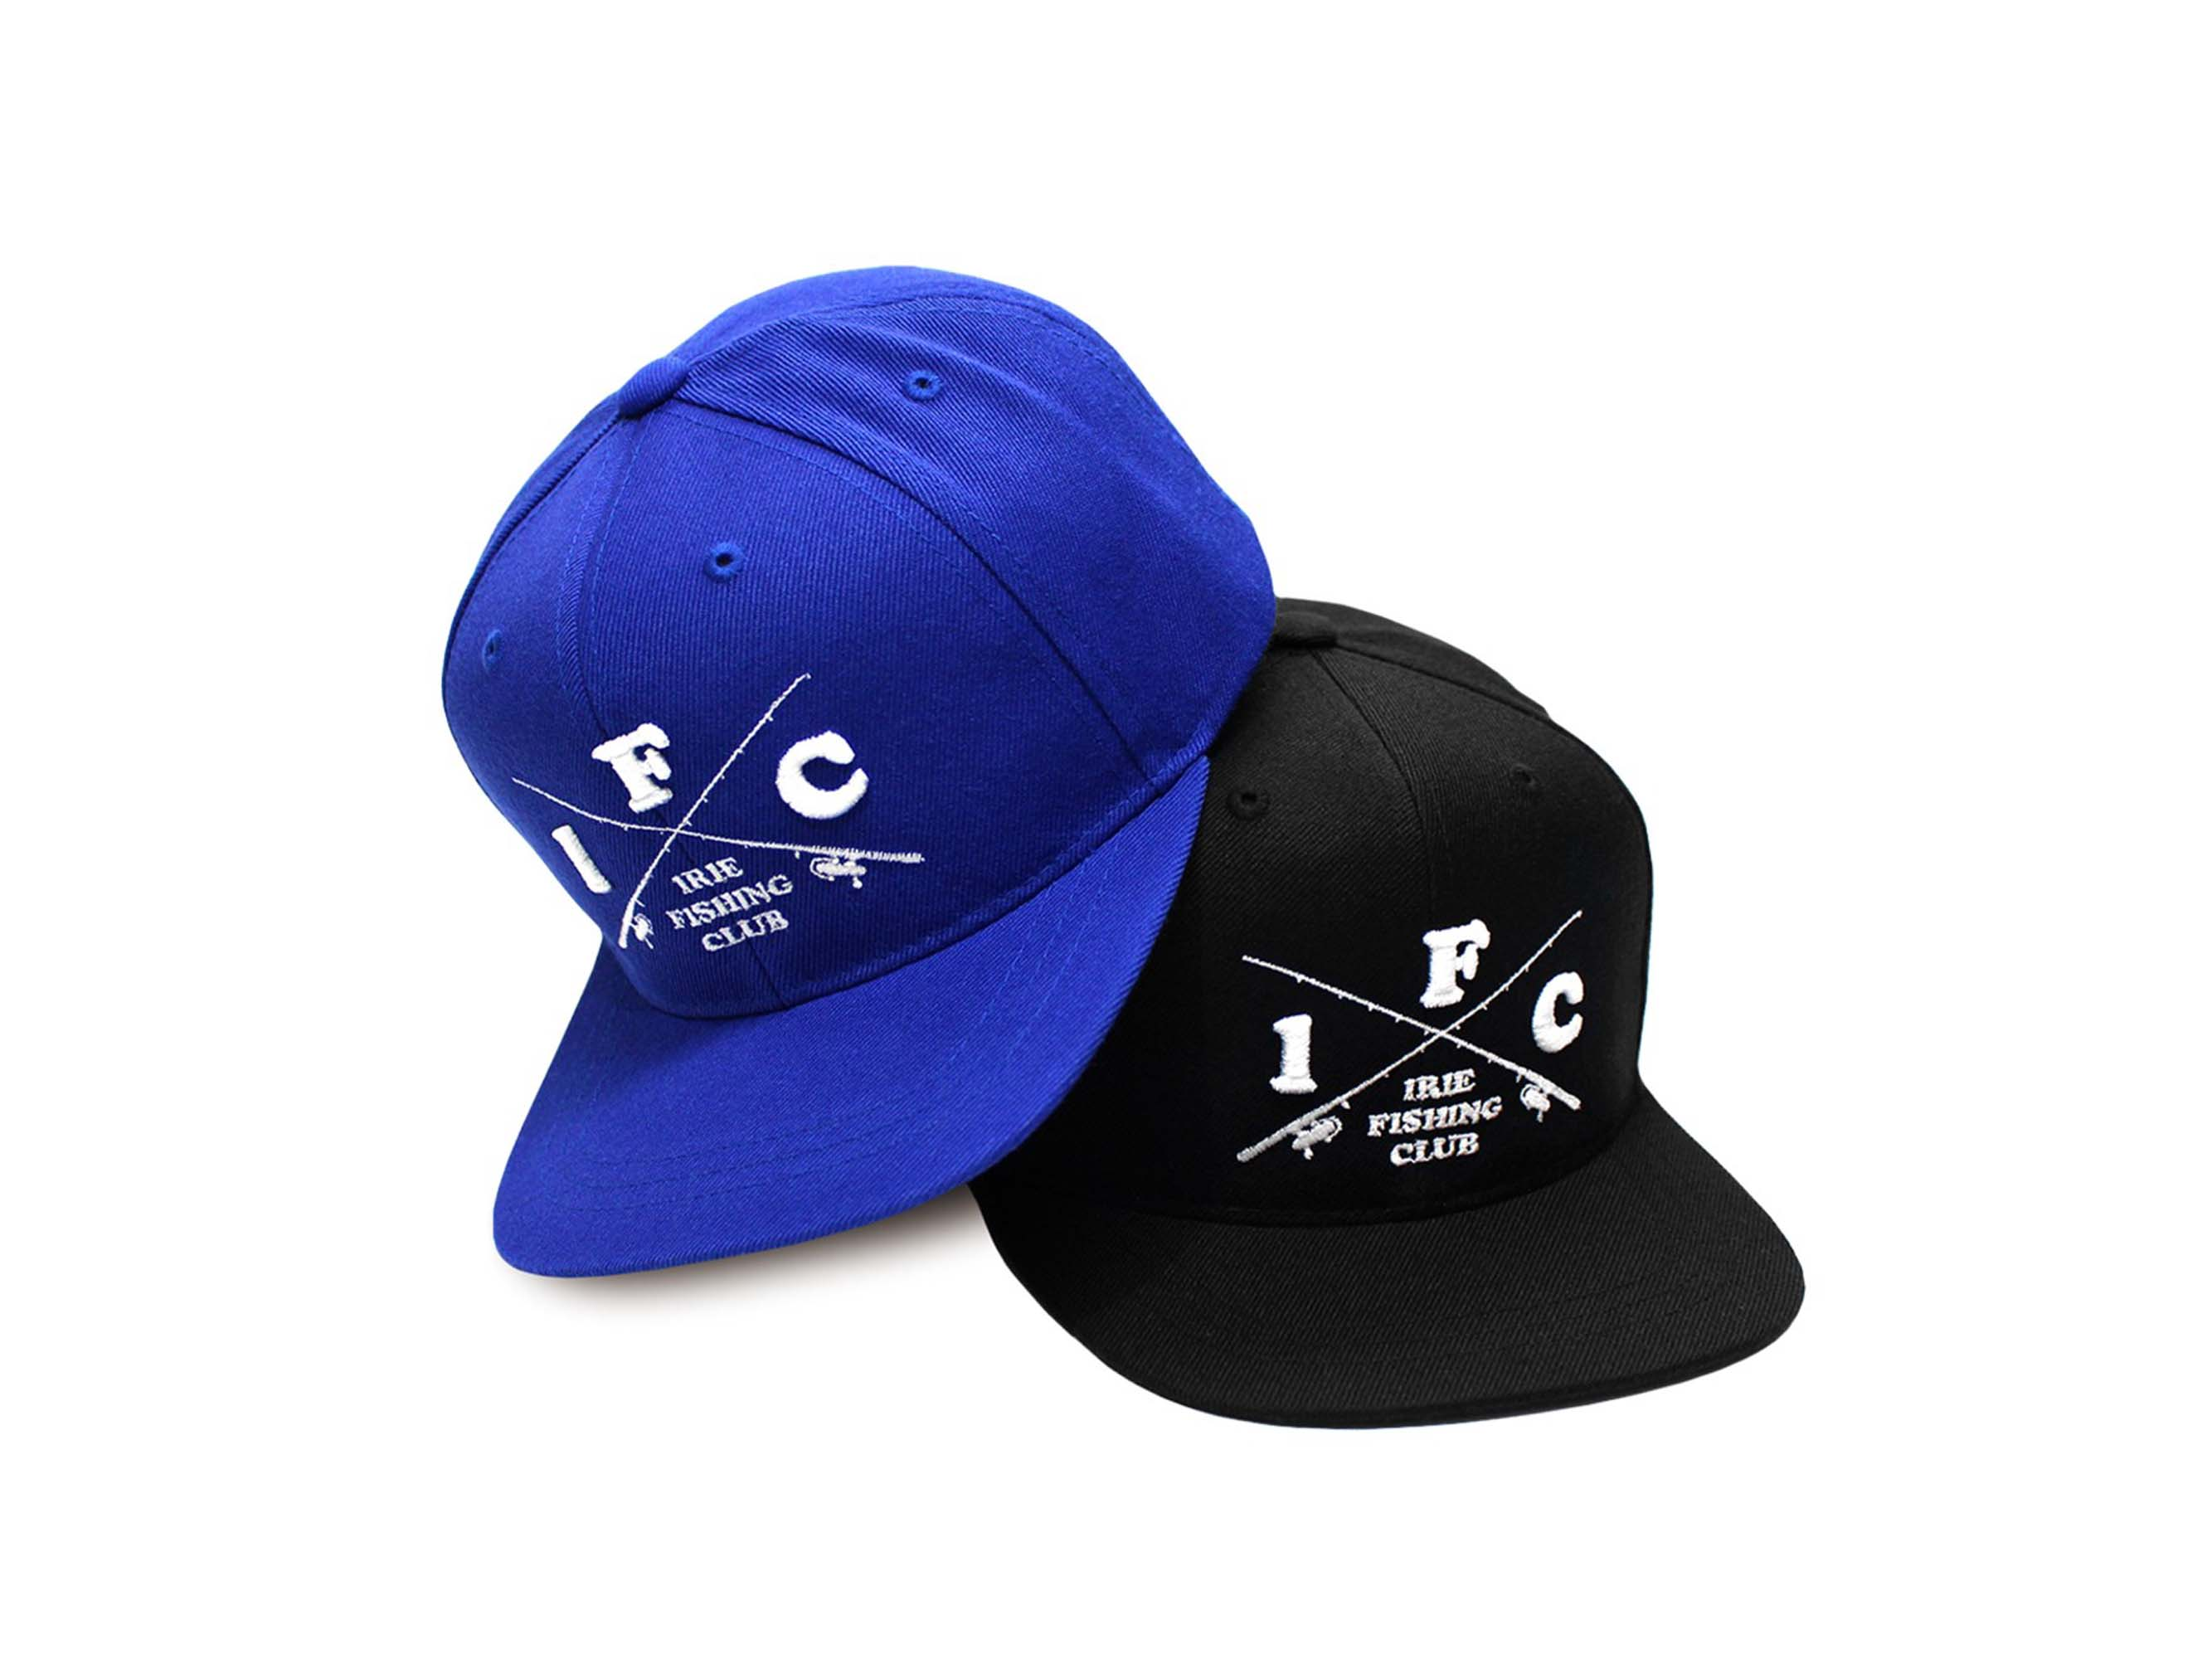 【KIDS】CROSS ROD SNAP BACK CAP for KIDS - IRIE FISHING CLUB-